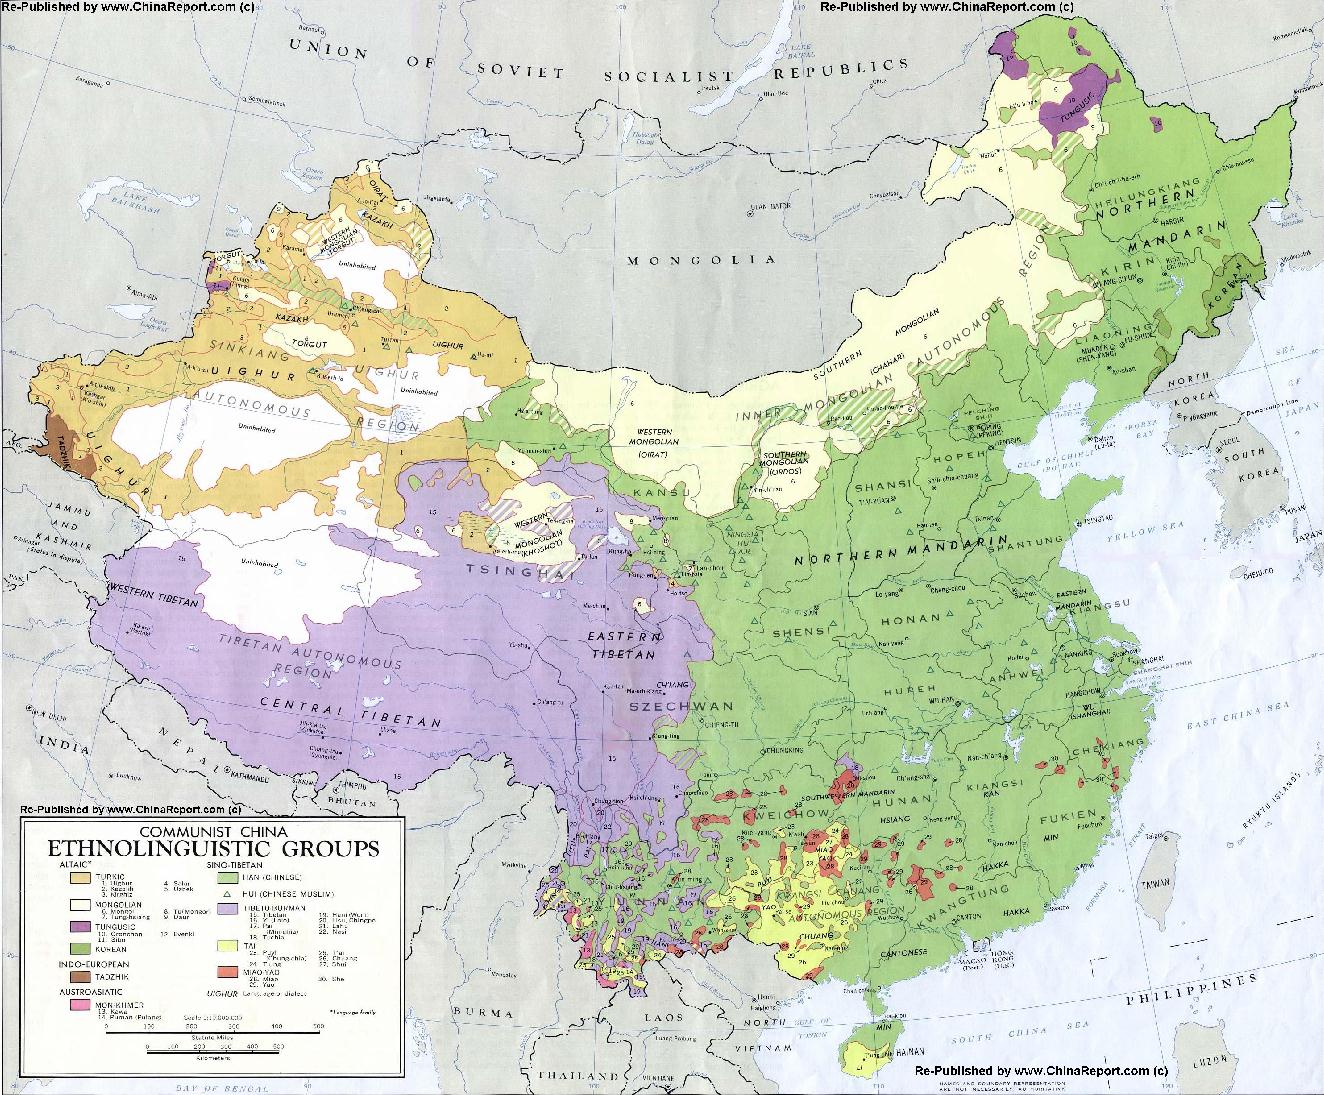 EthnoLinguistic Map of China 1967 AD Distribution of Languages